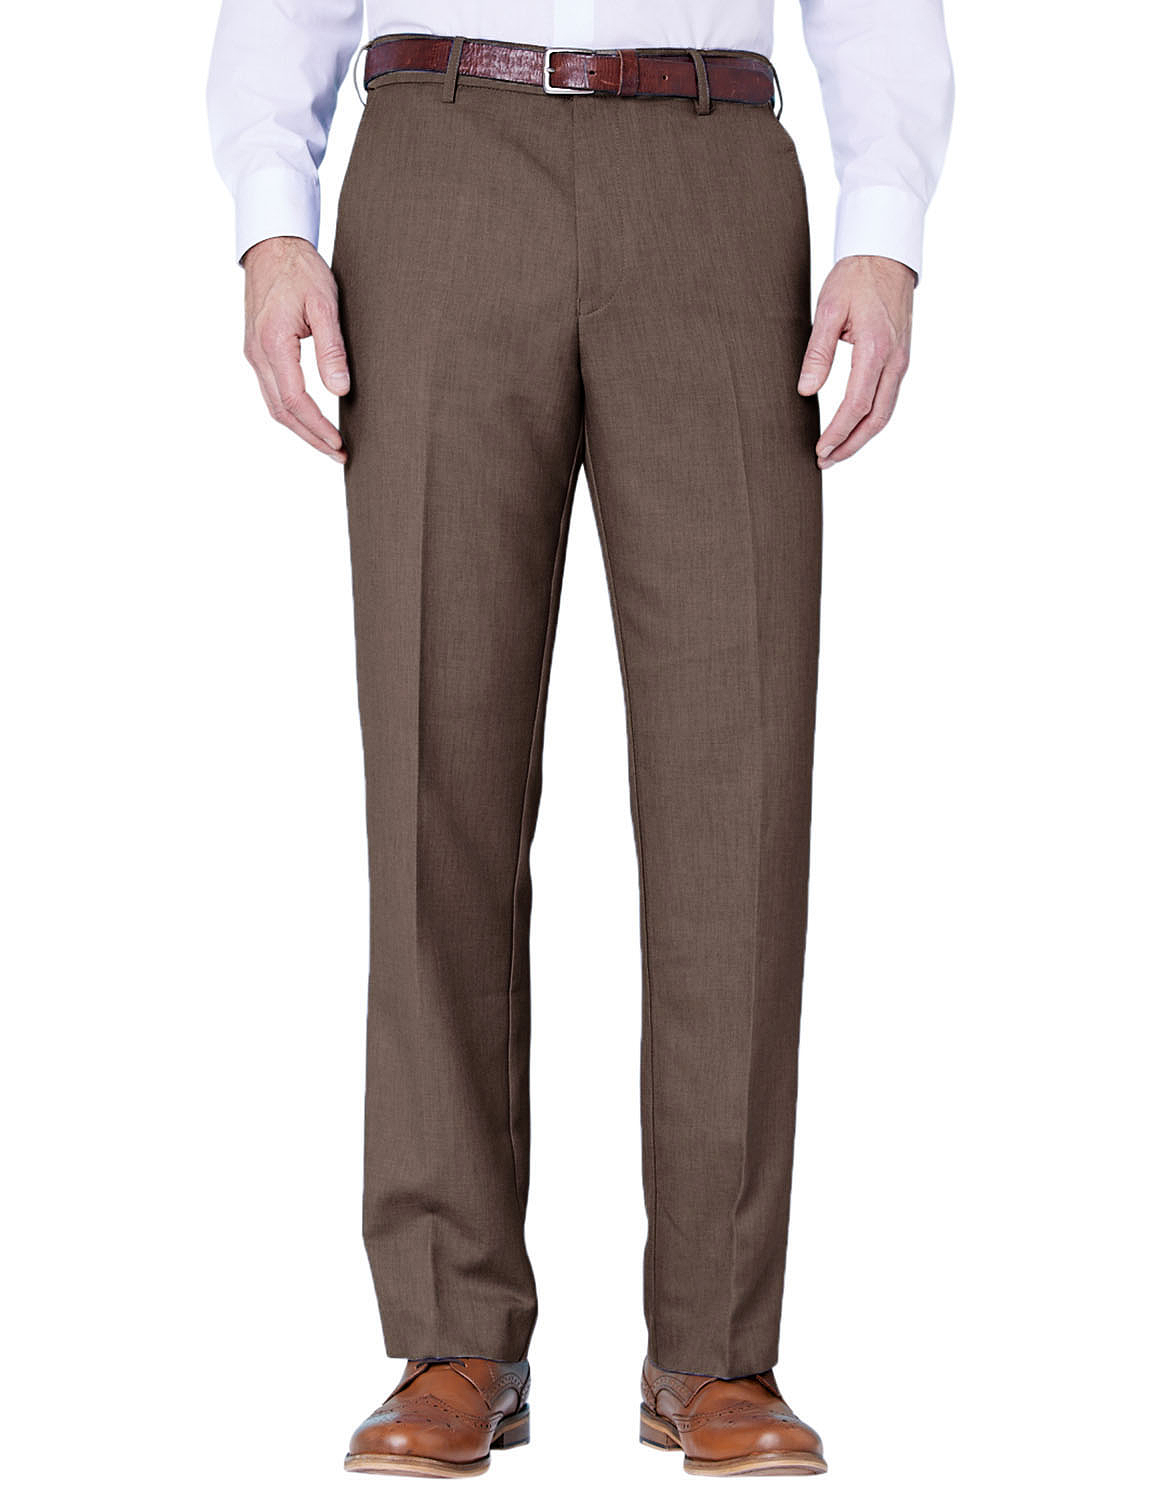 Farah Flex Trouser With Self Adjusting Waistband Menswear Trousers